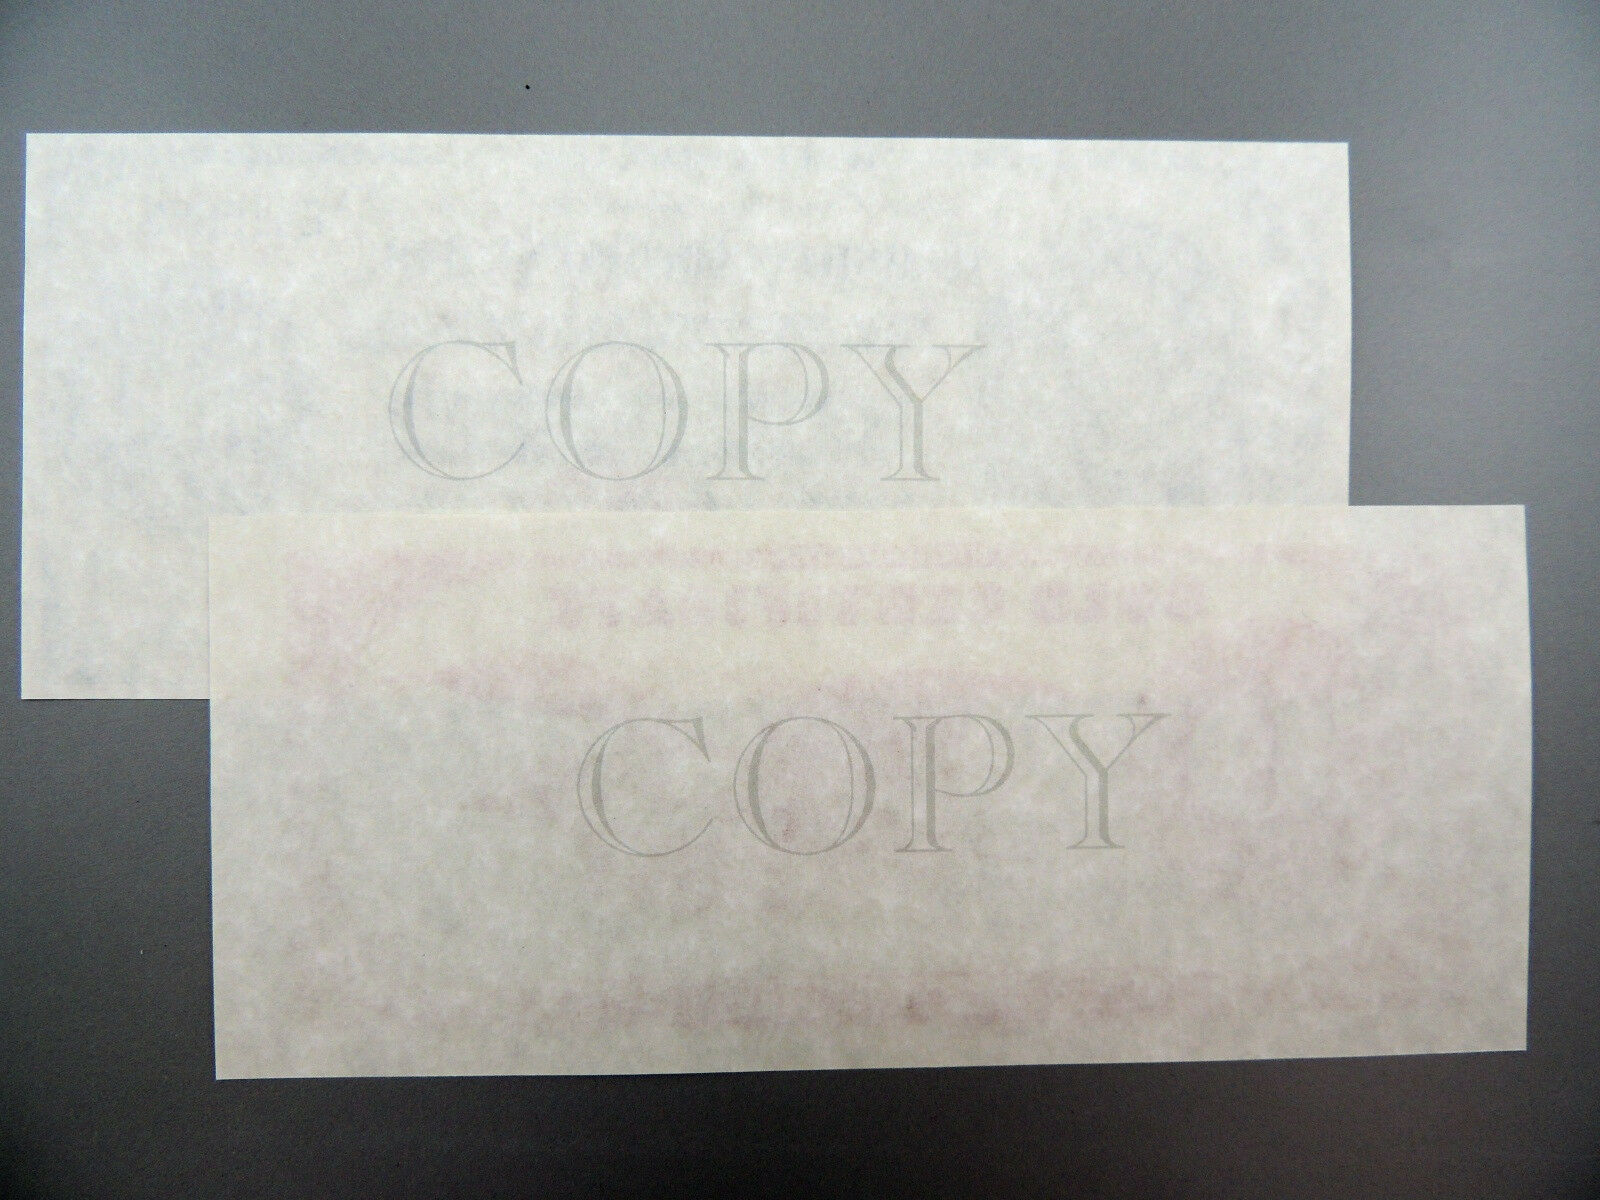 u.s. federal seal watermark paper 2008 All our products including the abilityone 2002203 us federal seal watermark paper are manufactured under iso 9001 quality standards, and we offer a full line of taa compliant products being green is an important part of our business and we are meeting all green compliance standards.